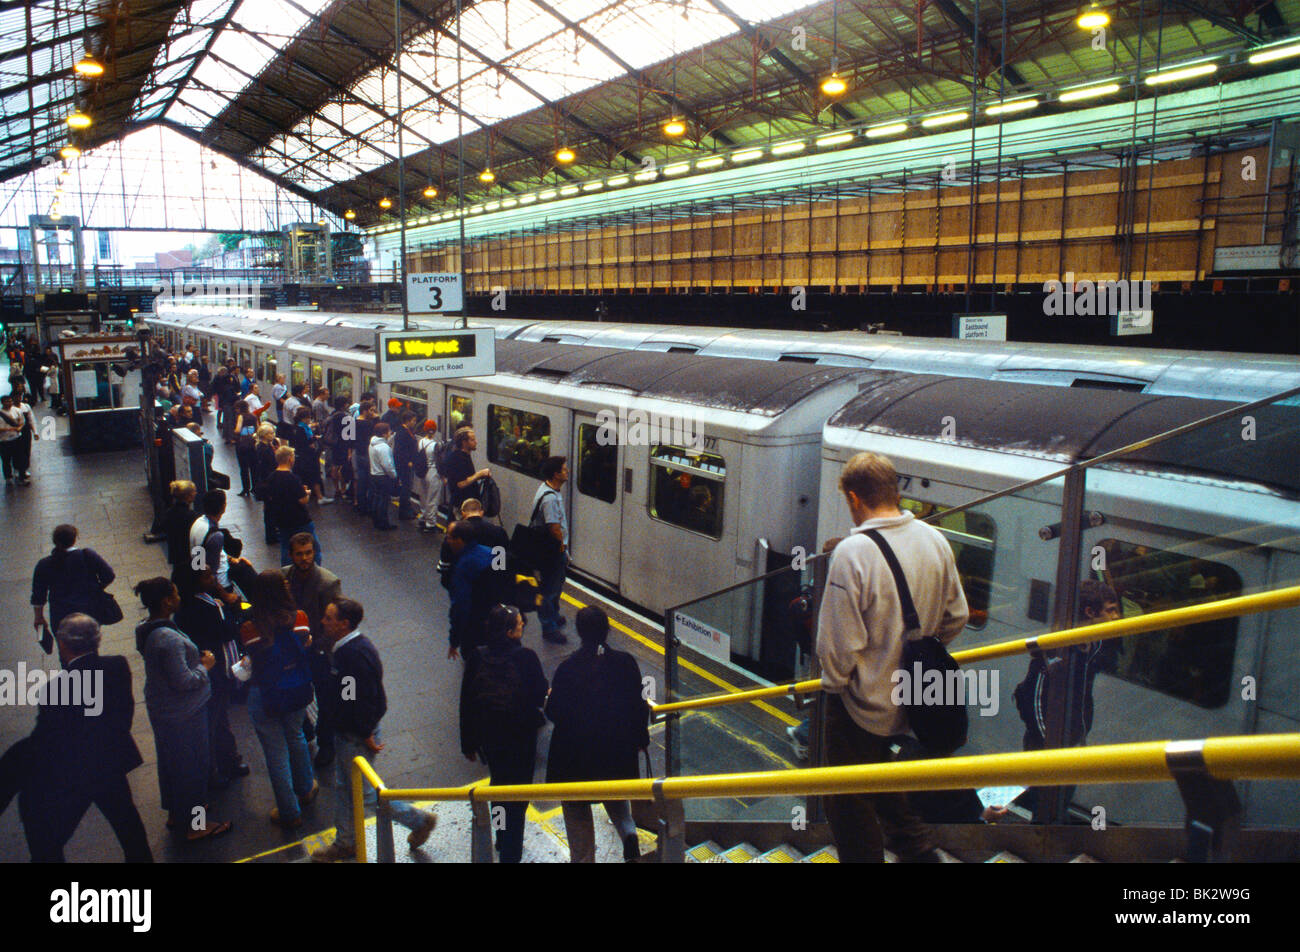 Earls Court Tube Station London Train With Doors Closed & Passengers Waiting Stock Photo